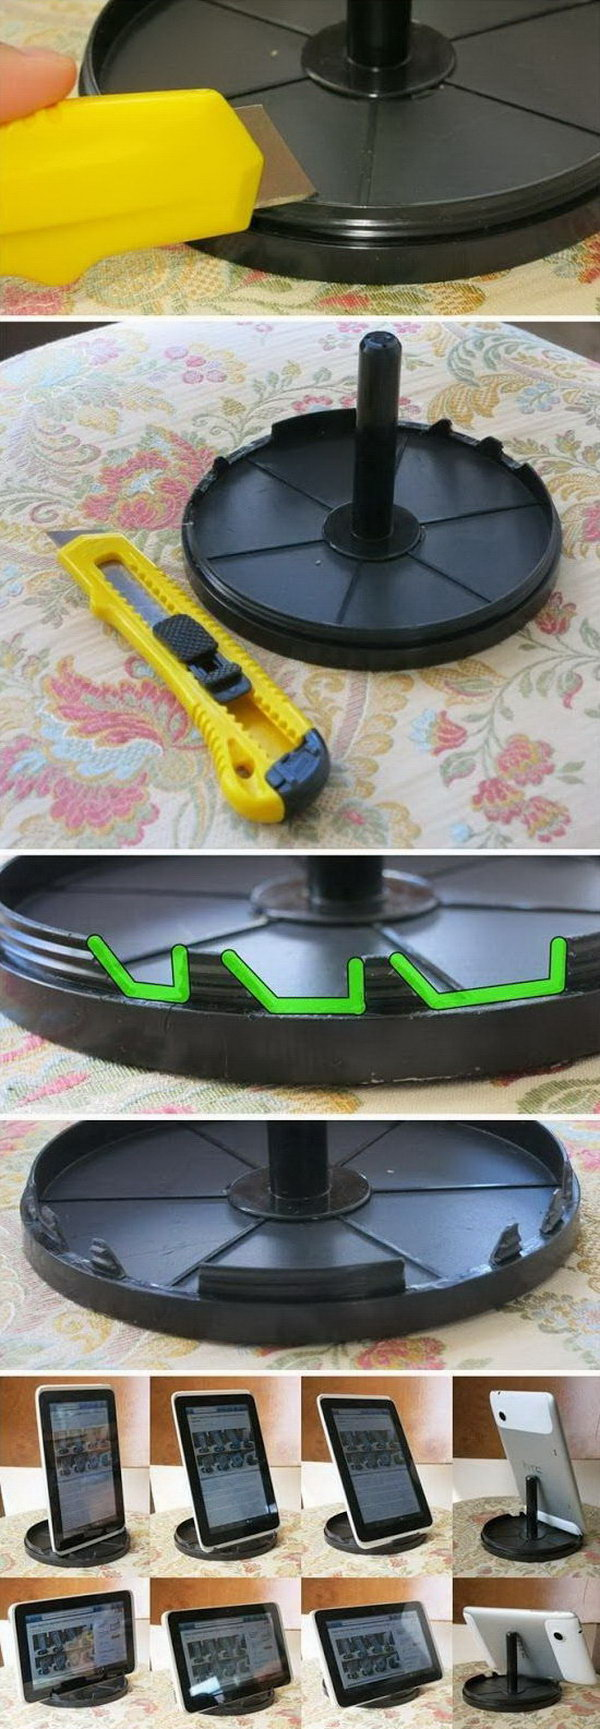 DIY CD spindle iPad stand. It's super easy to create an iPad stand out of the CD spinder.